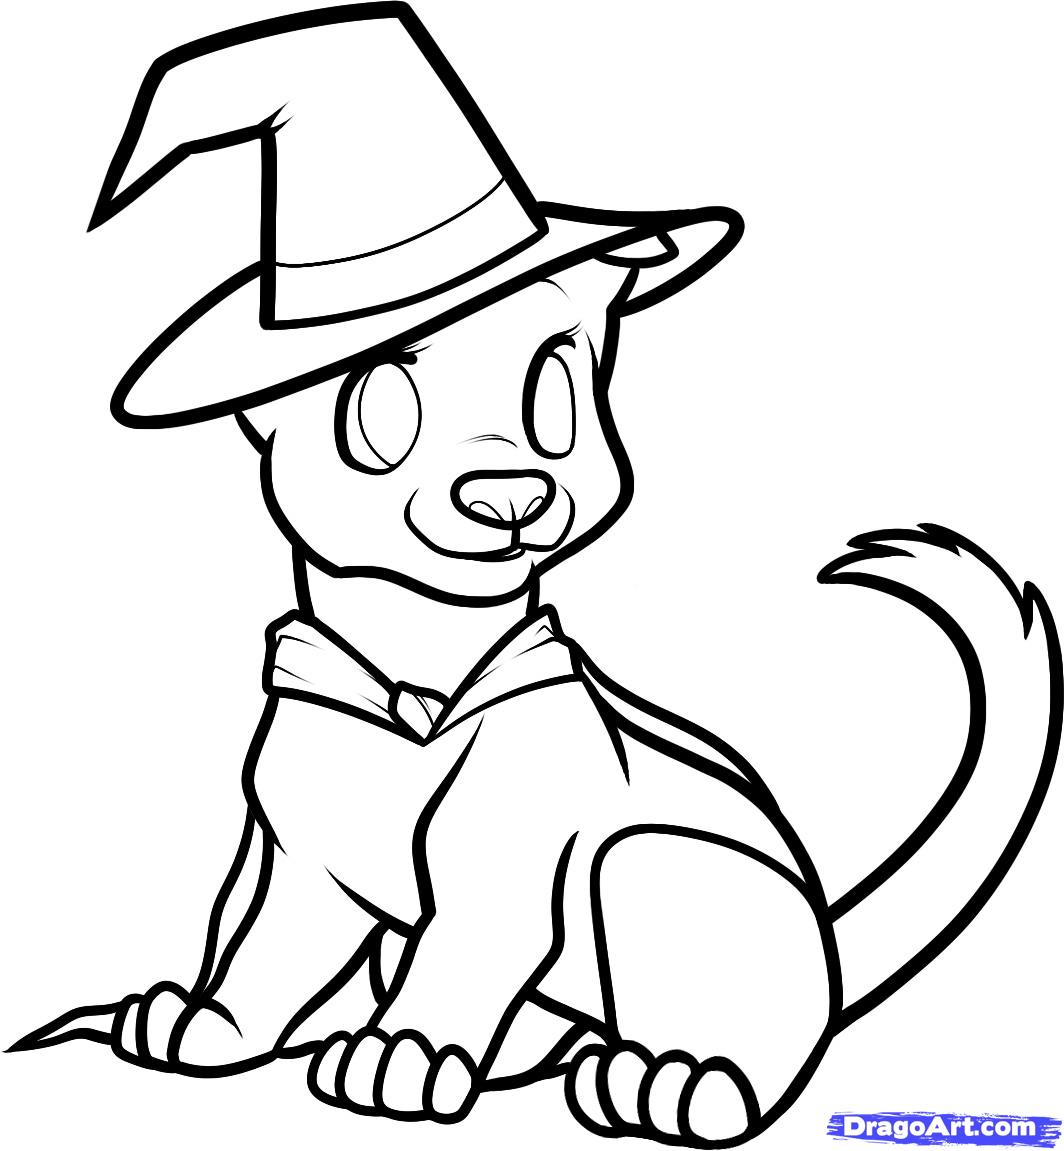 1064x1151 Cute Halloween Drawings Easy Things To Draw